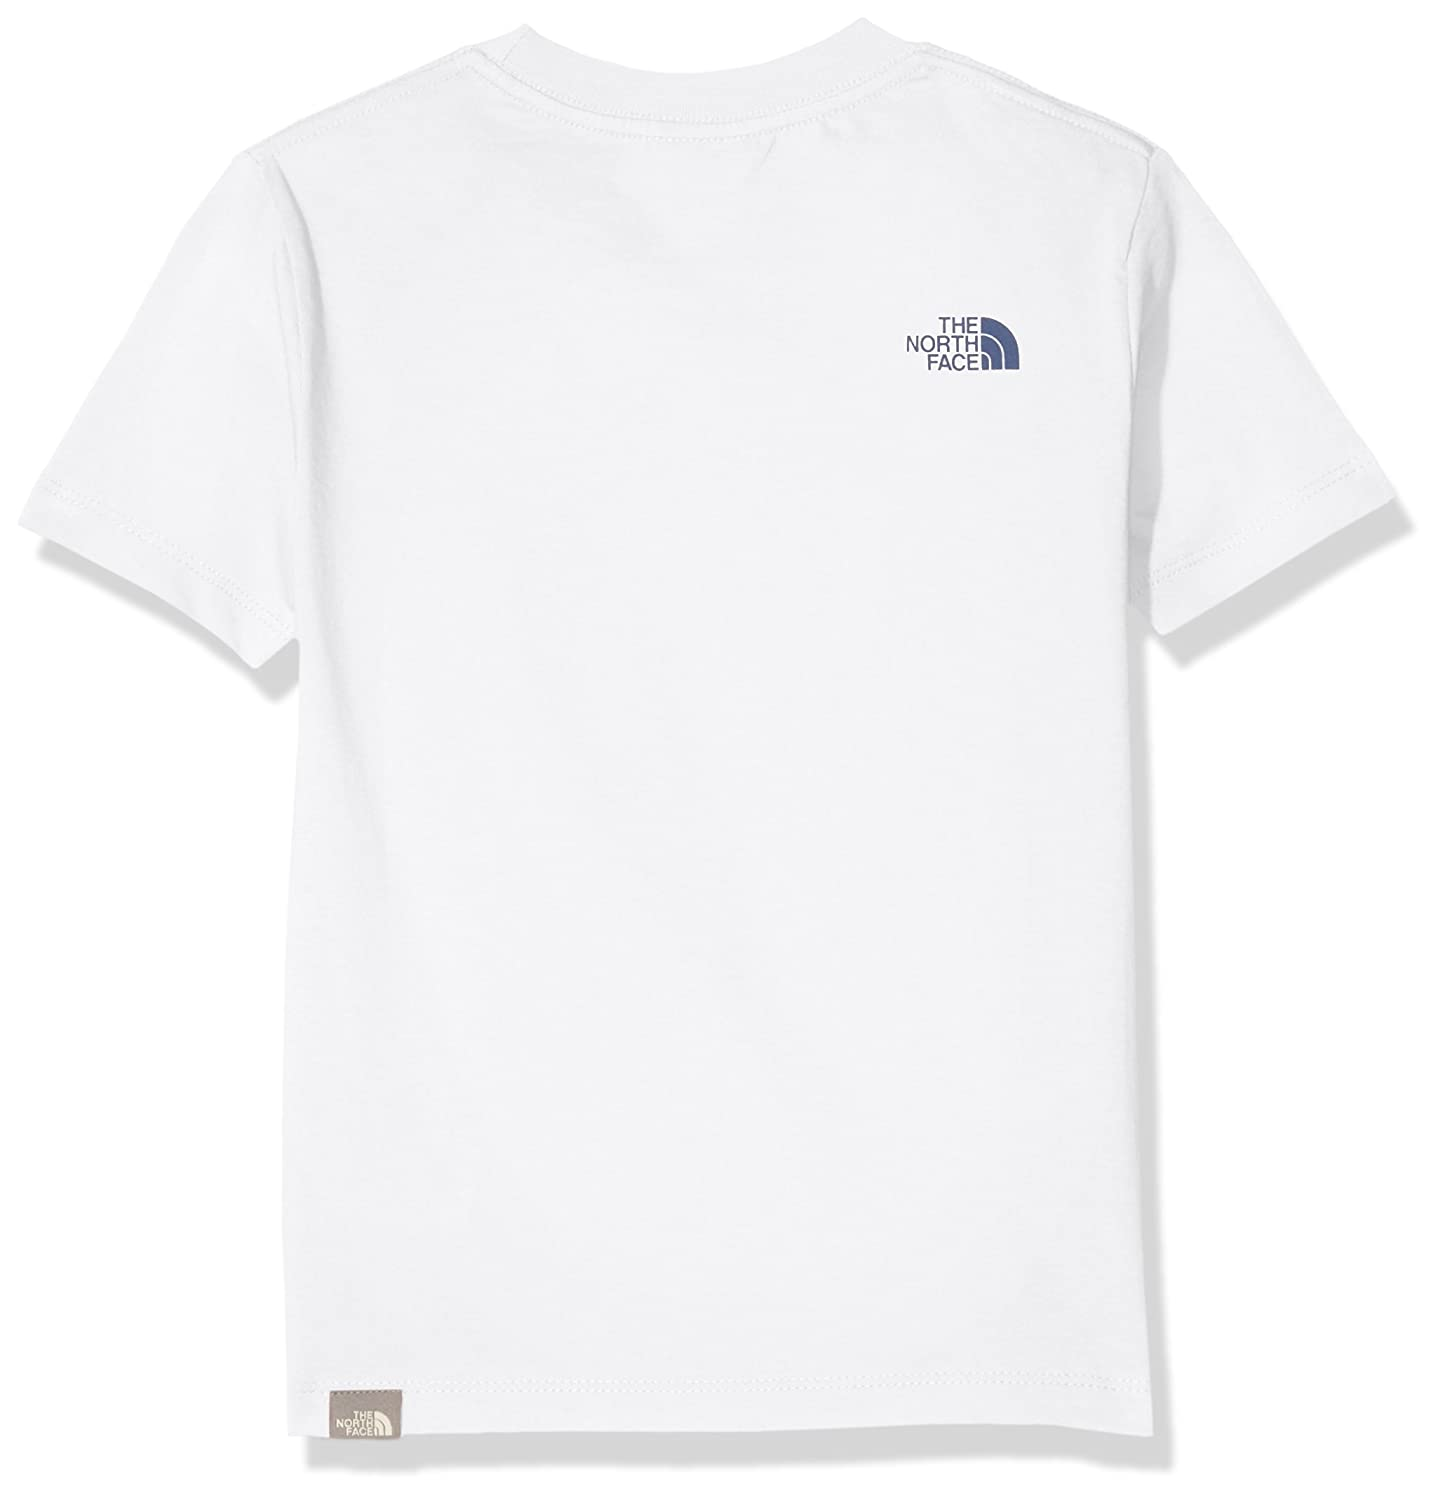 19e987e16d8 THE NORTH FACE S S And Ascent Tee T-Shirt